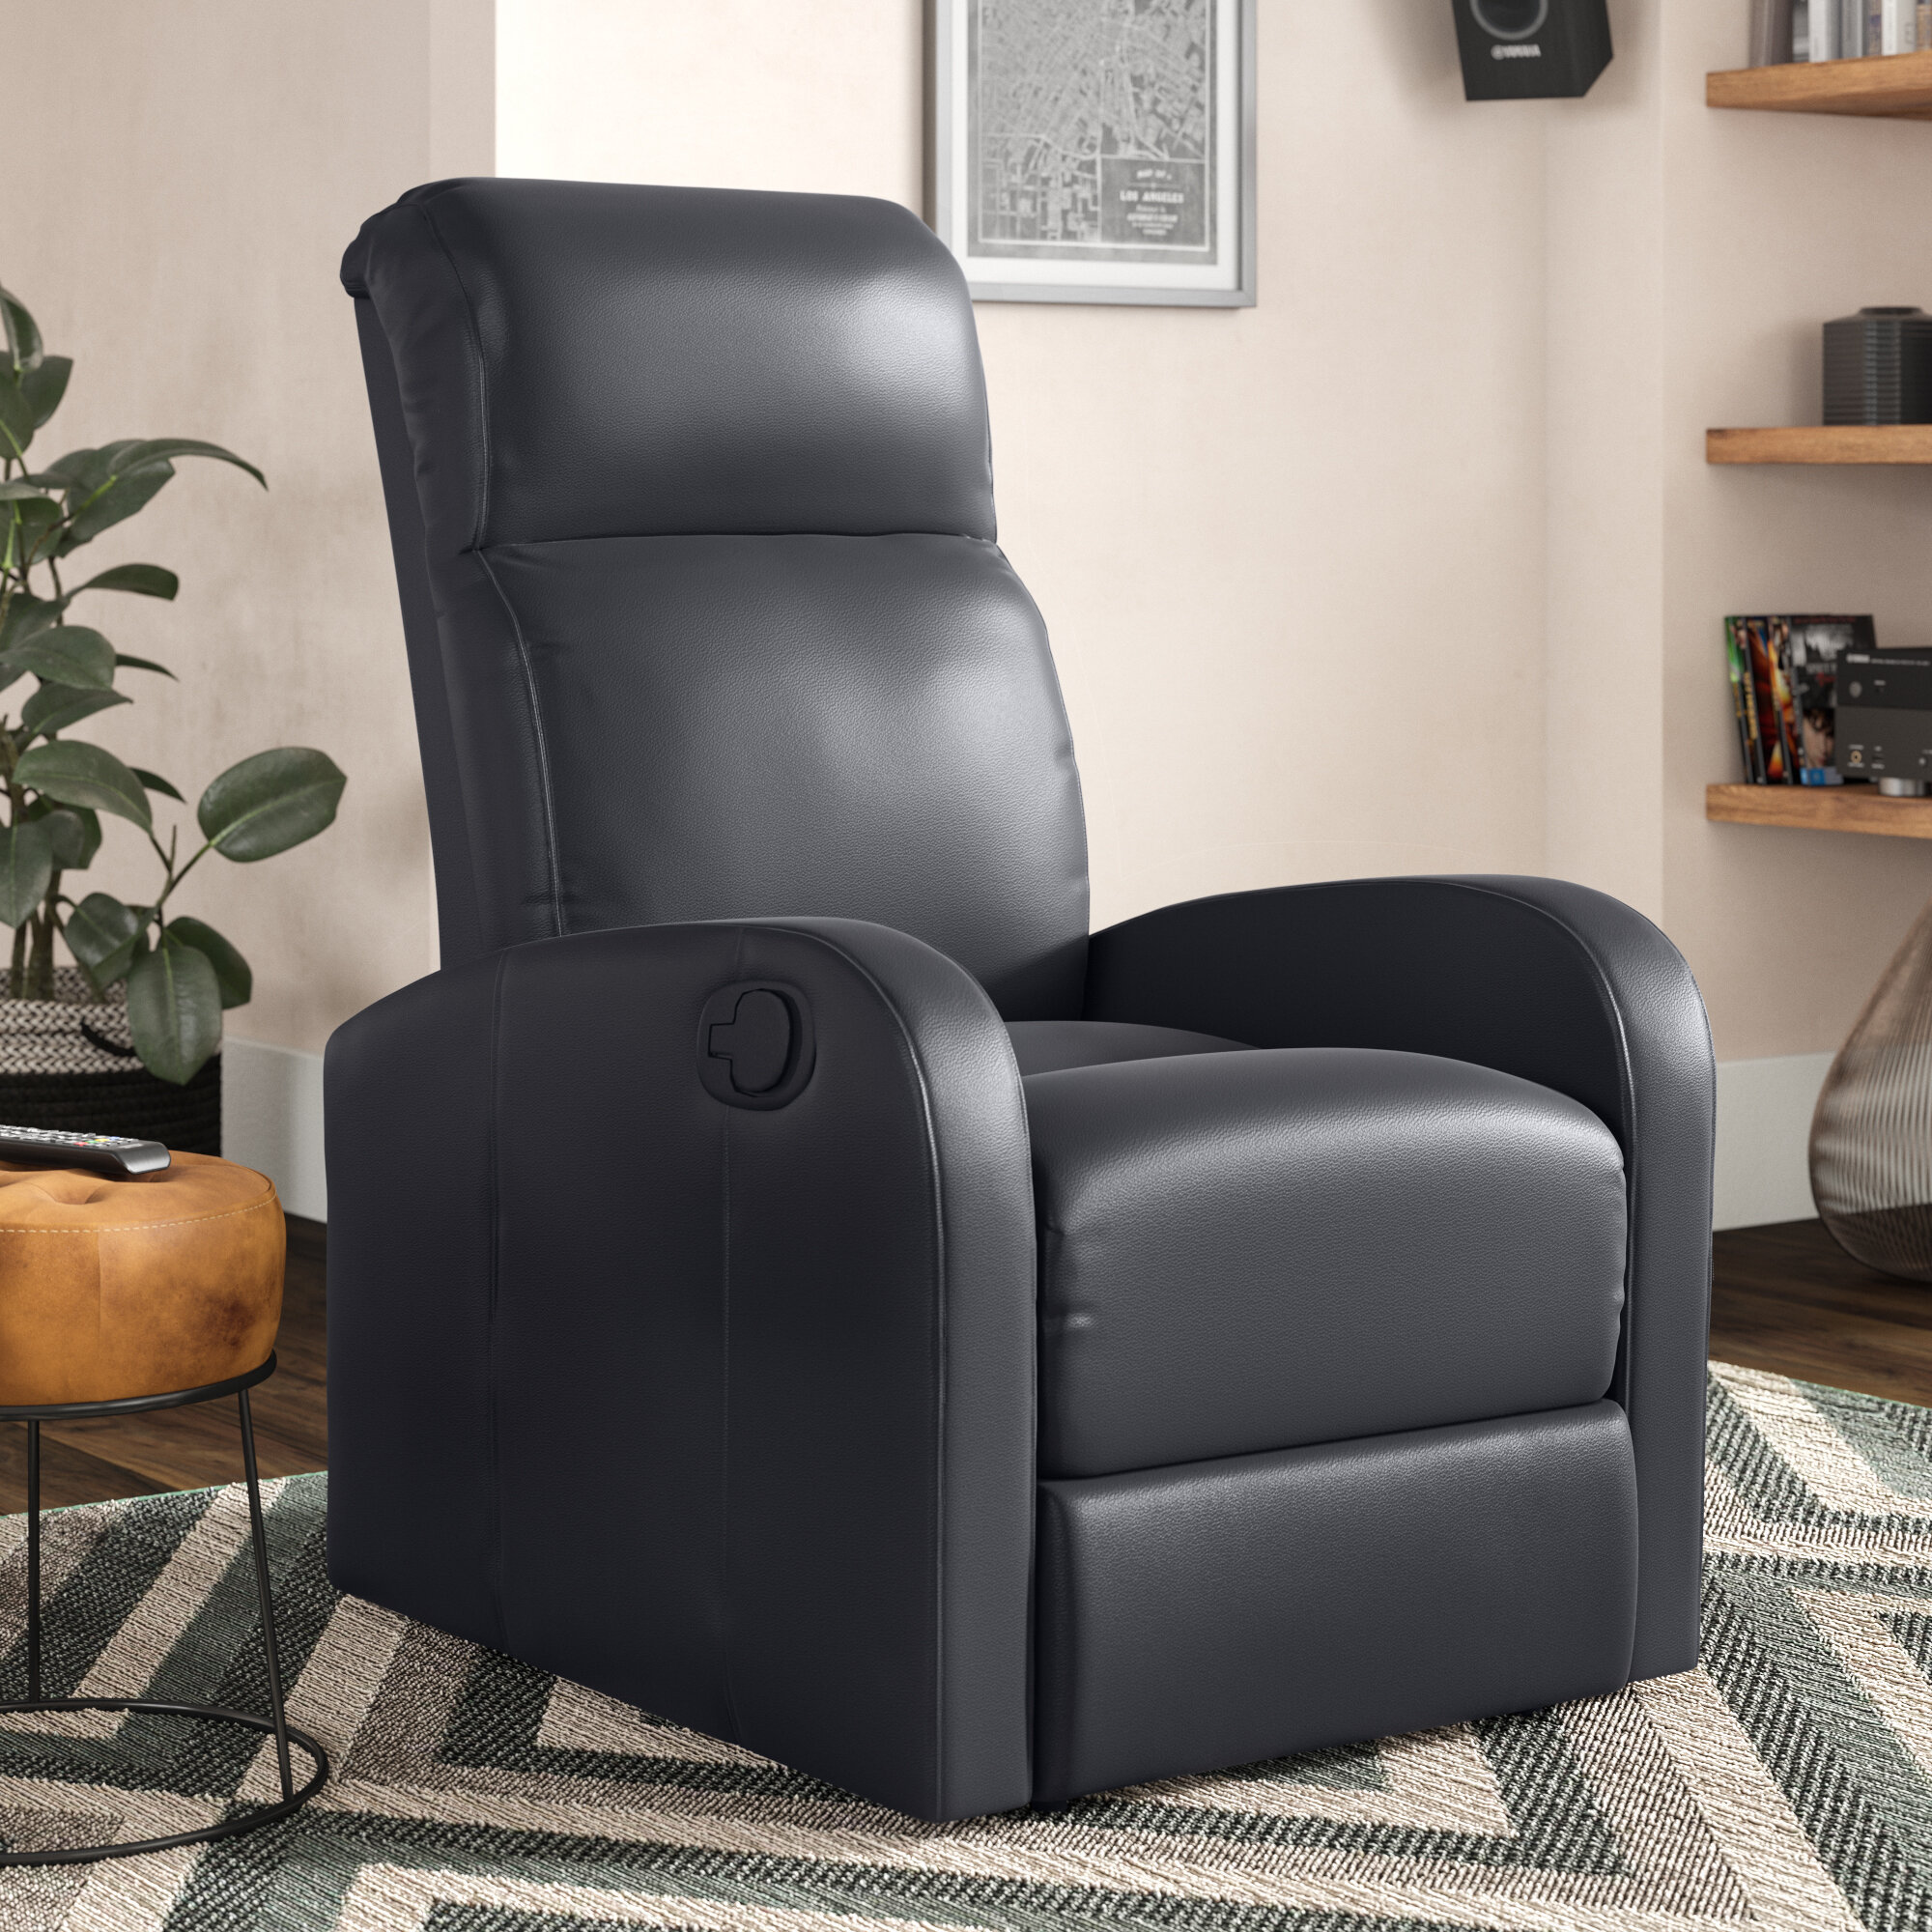 Costway Manual Recliner Chair Black Lounger Leather Sofa Seat Home Theatre